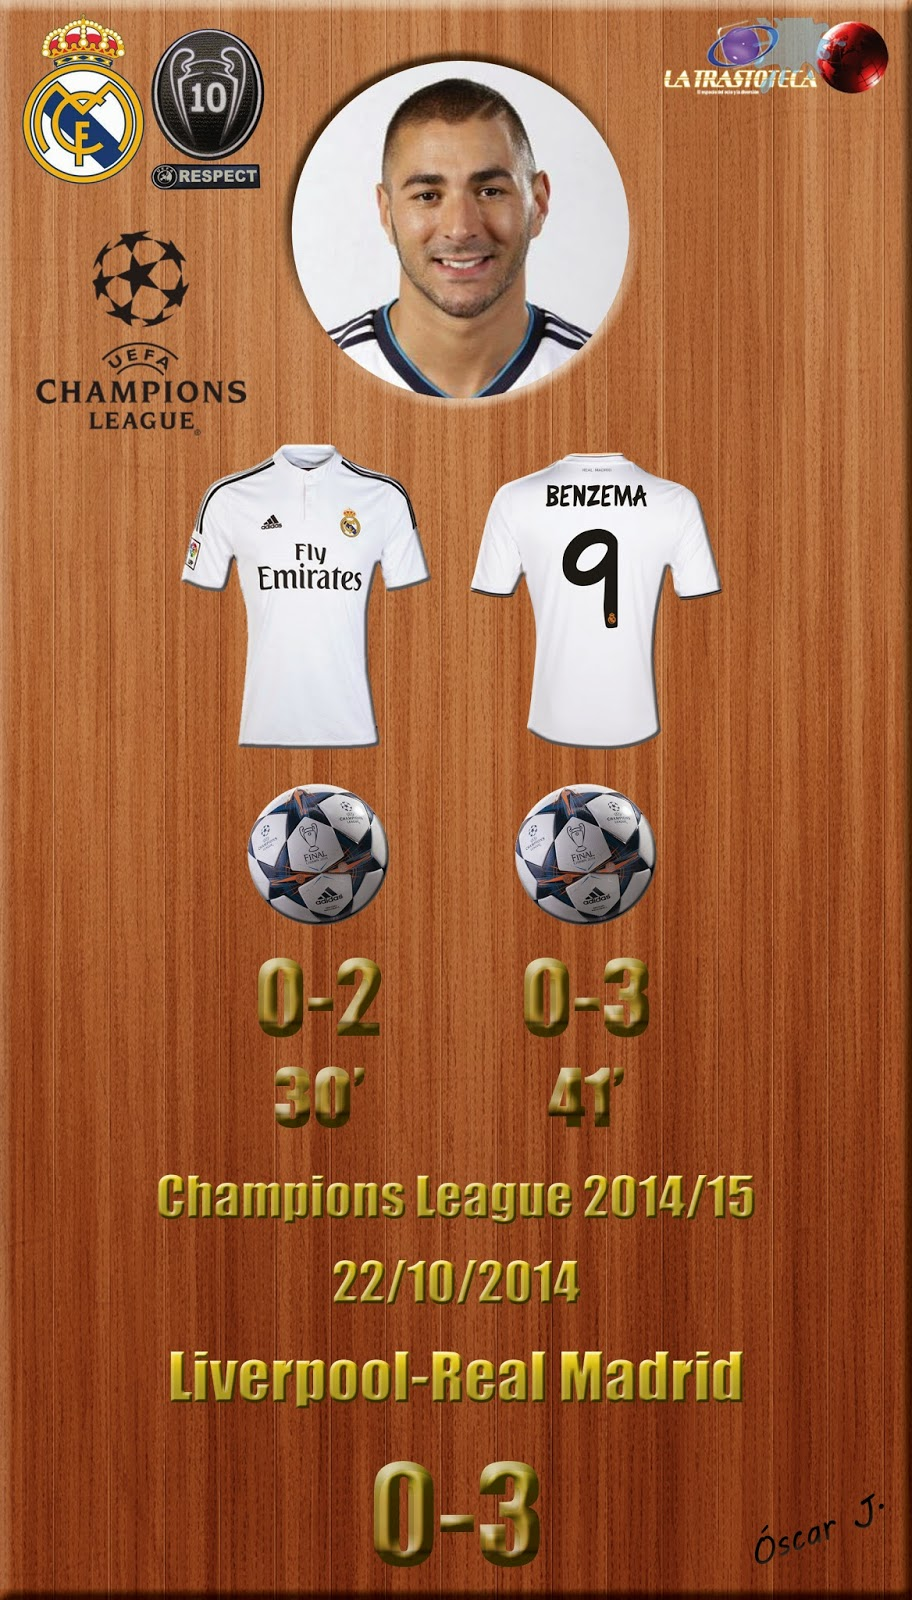 Bencema - Doblete - Liverpool 0-3 Real Madrid - Champions League 2014/15 - (22/10/2014)